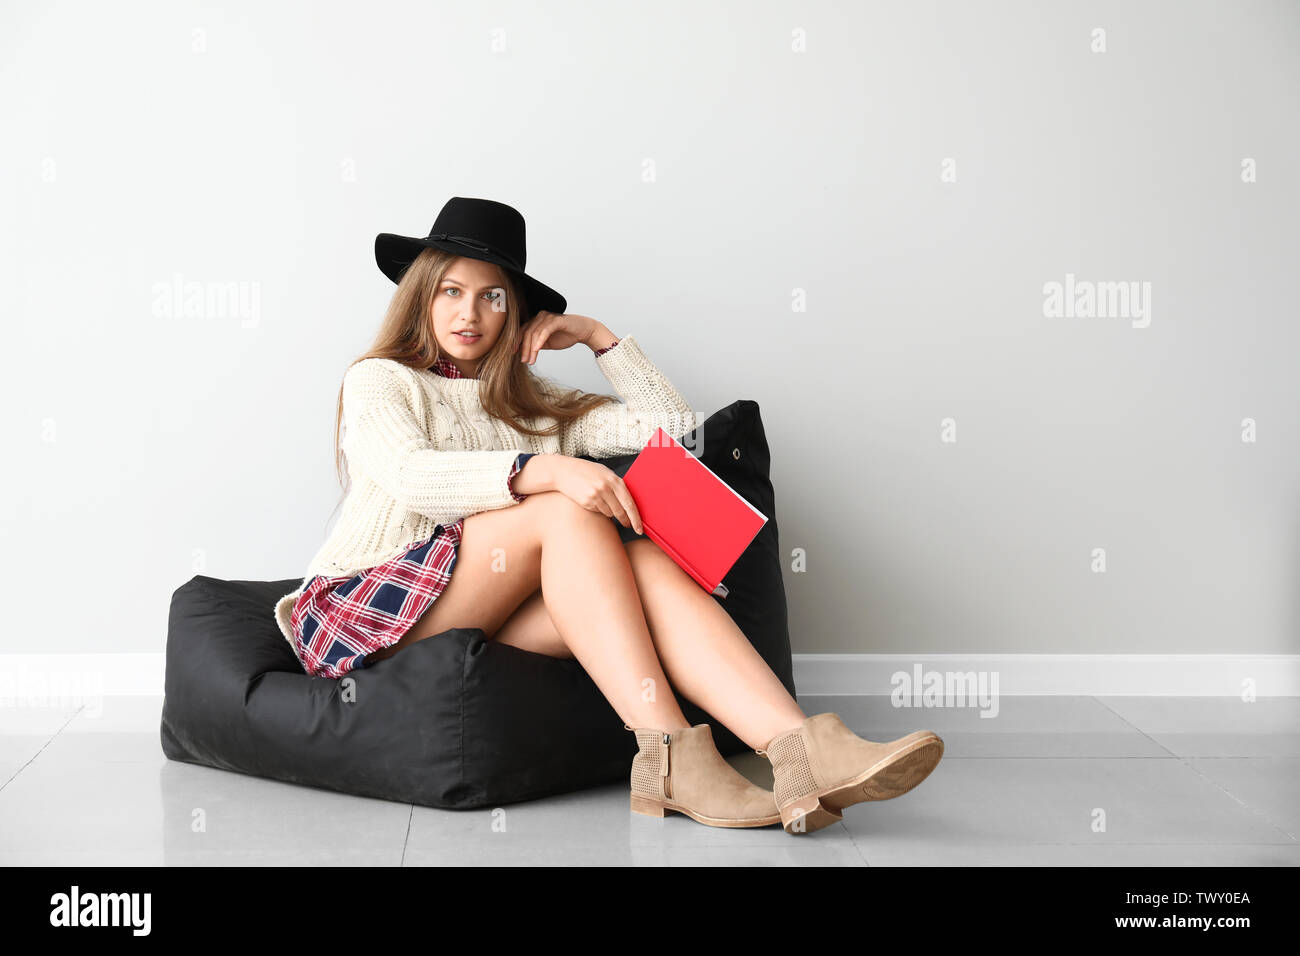 Beautiful young woman with book sitting near light wall - Stock Image